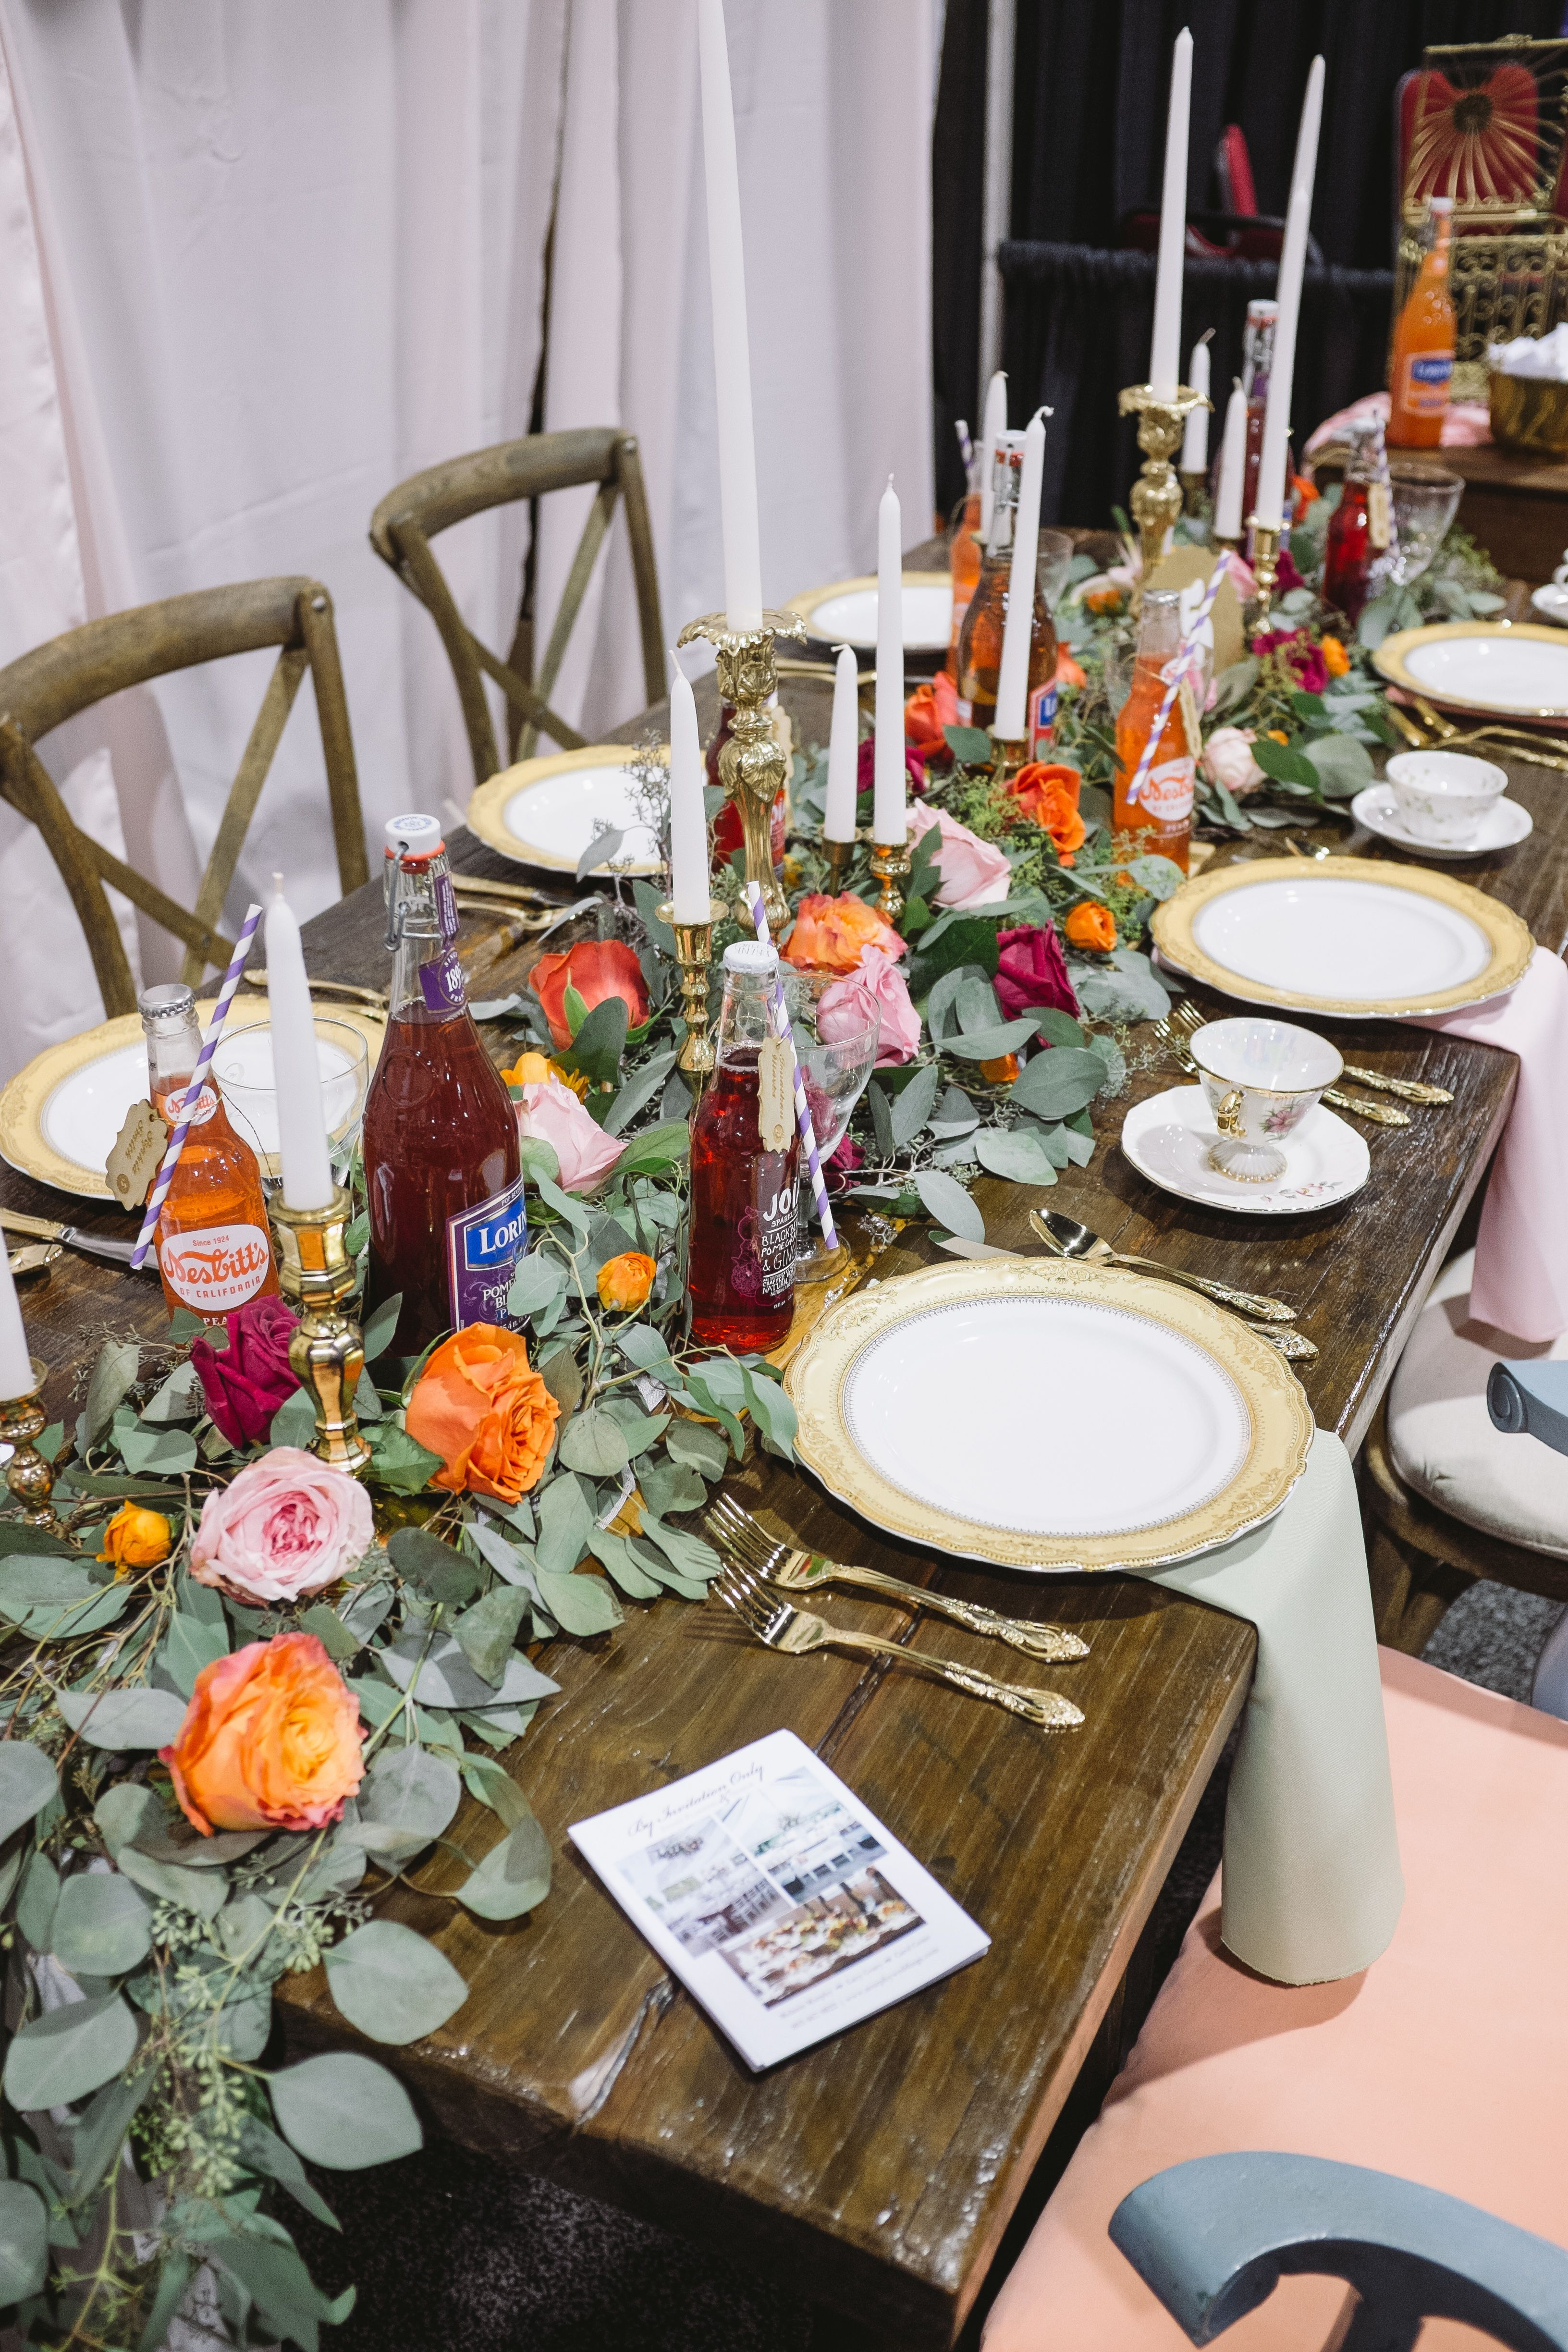 Our lovely table for the bridal show.  Eucalyptus garland with coral and pink blooms.  Vintage soda bottle seating cards